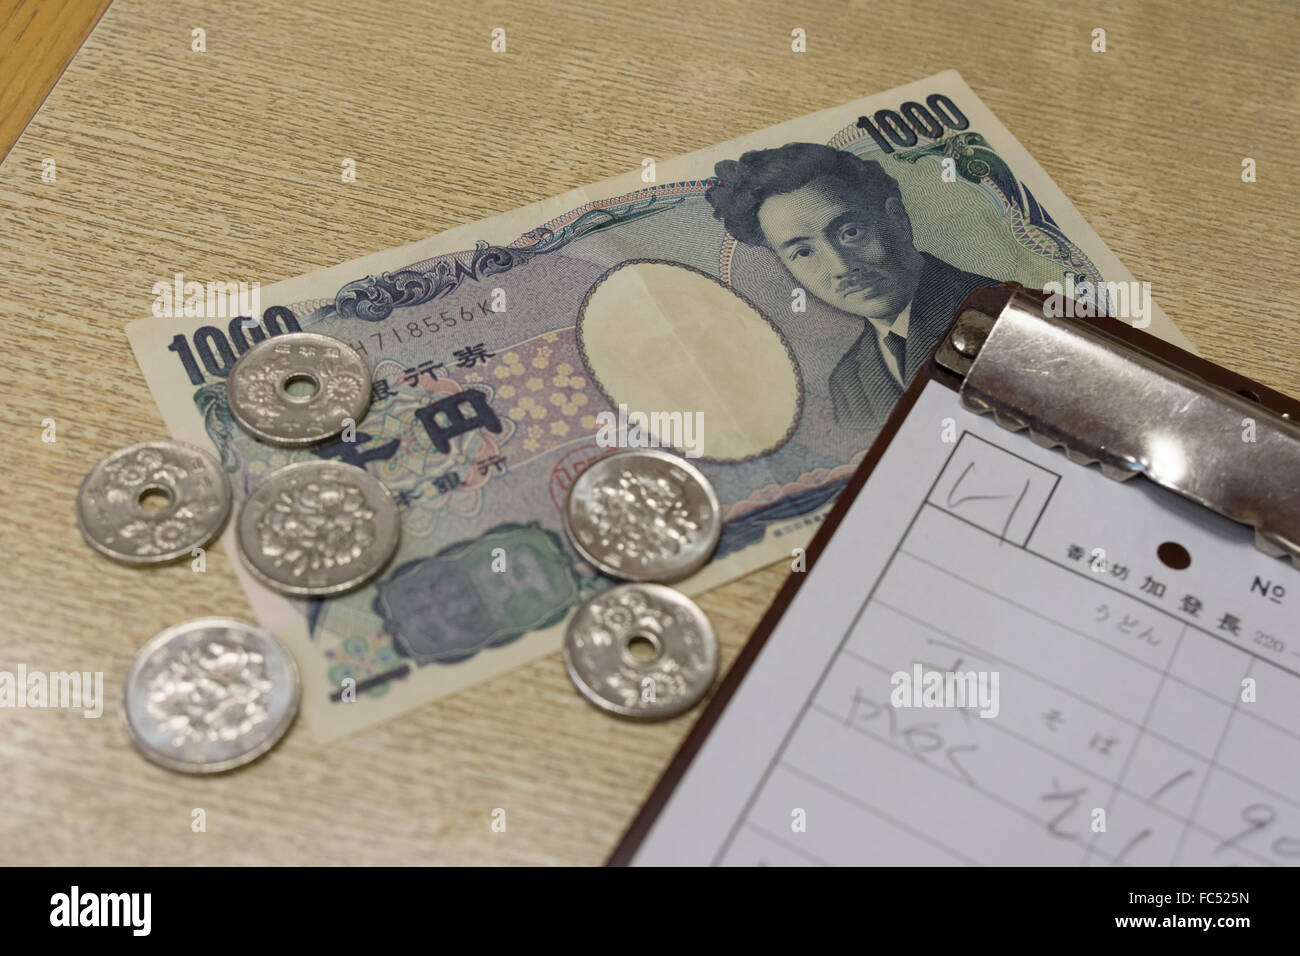 bill and payment in Japanese yen - Stock Image